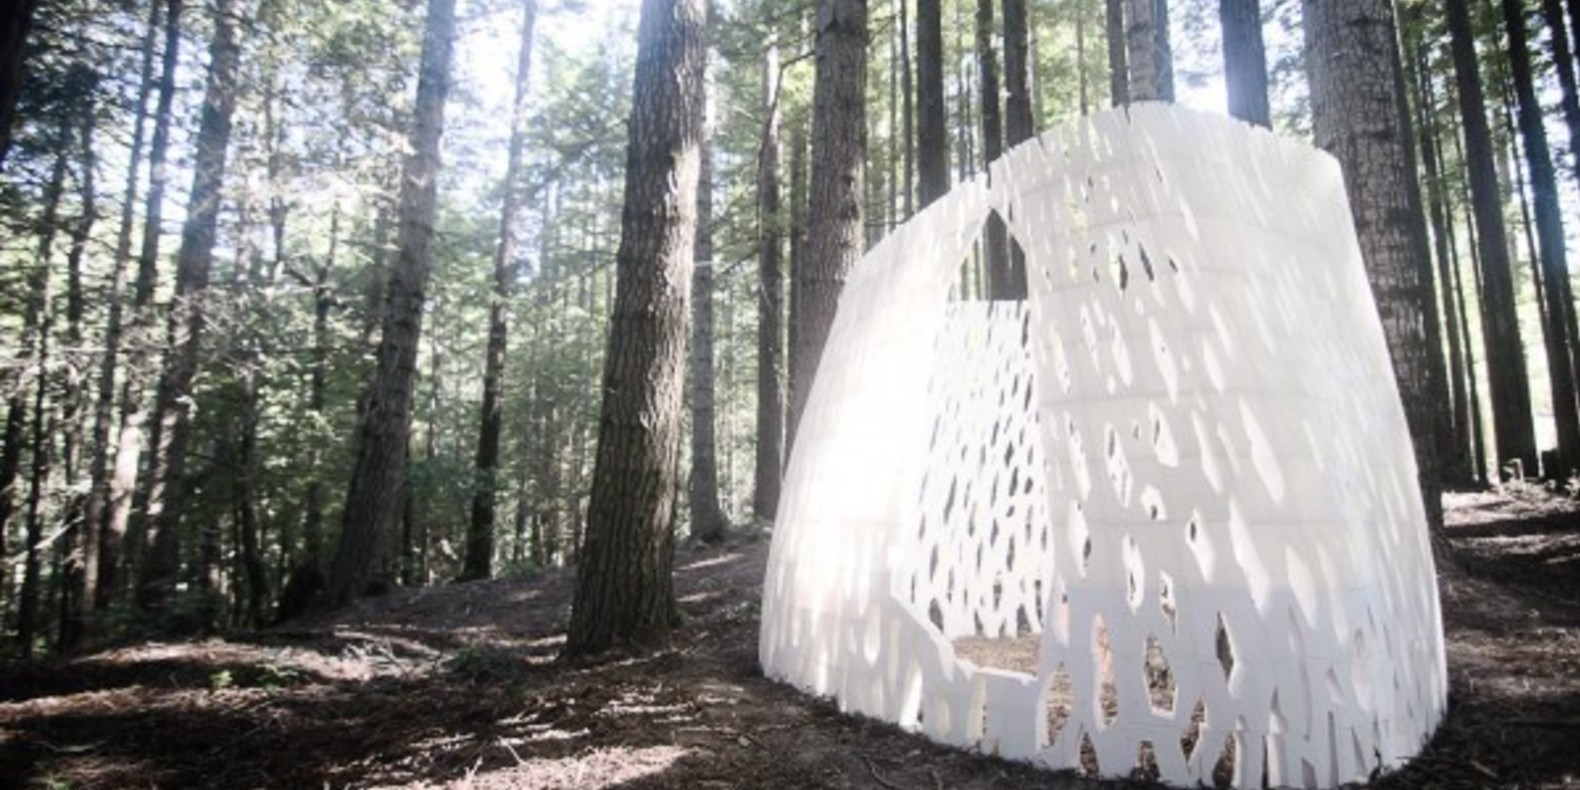 Echoviren, the first architectural structure realized in 3D